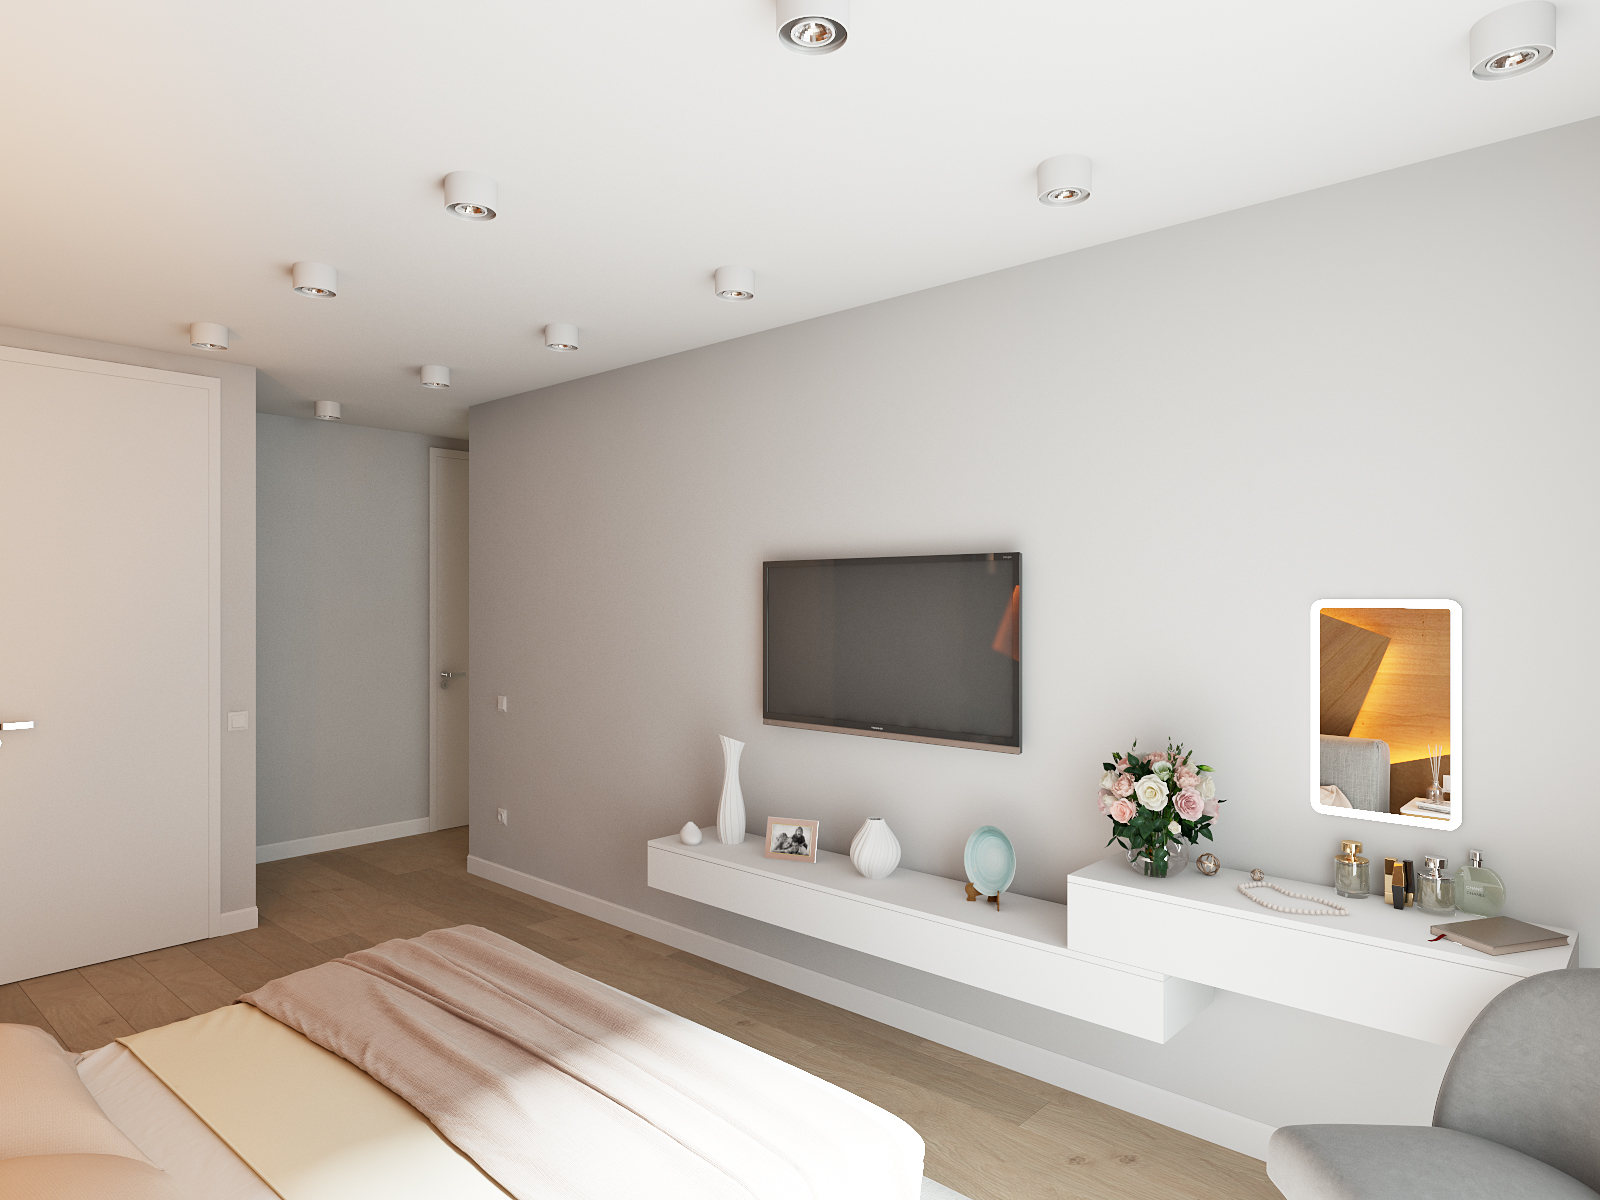 Bedroom-renders-3